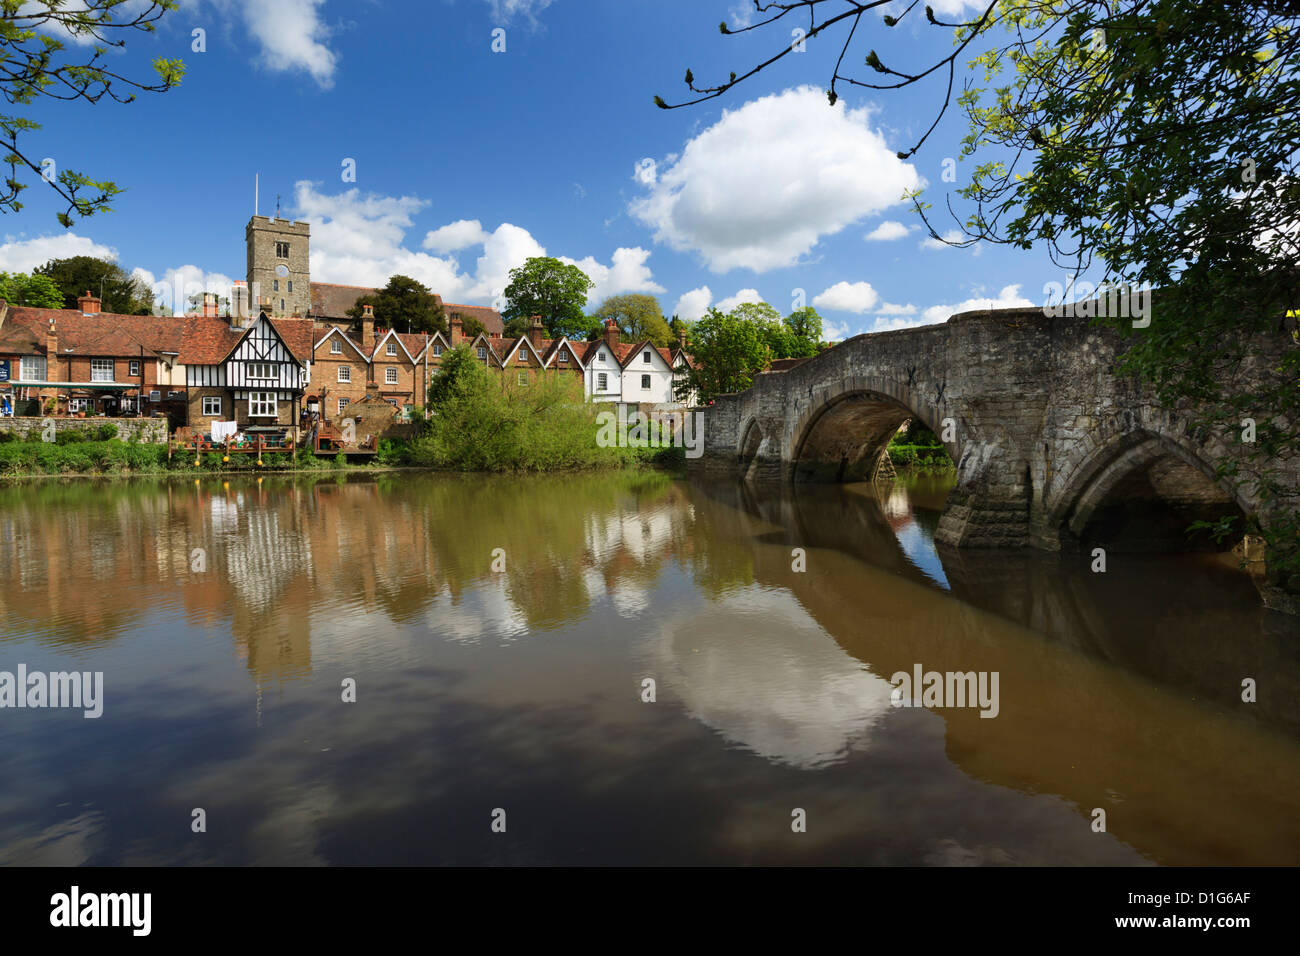 Village and medieval bridge over the River Medway, Aylesford, near Maidstone, Kent, England, United Kingdom, Europe - Stock Image